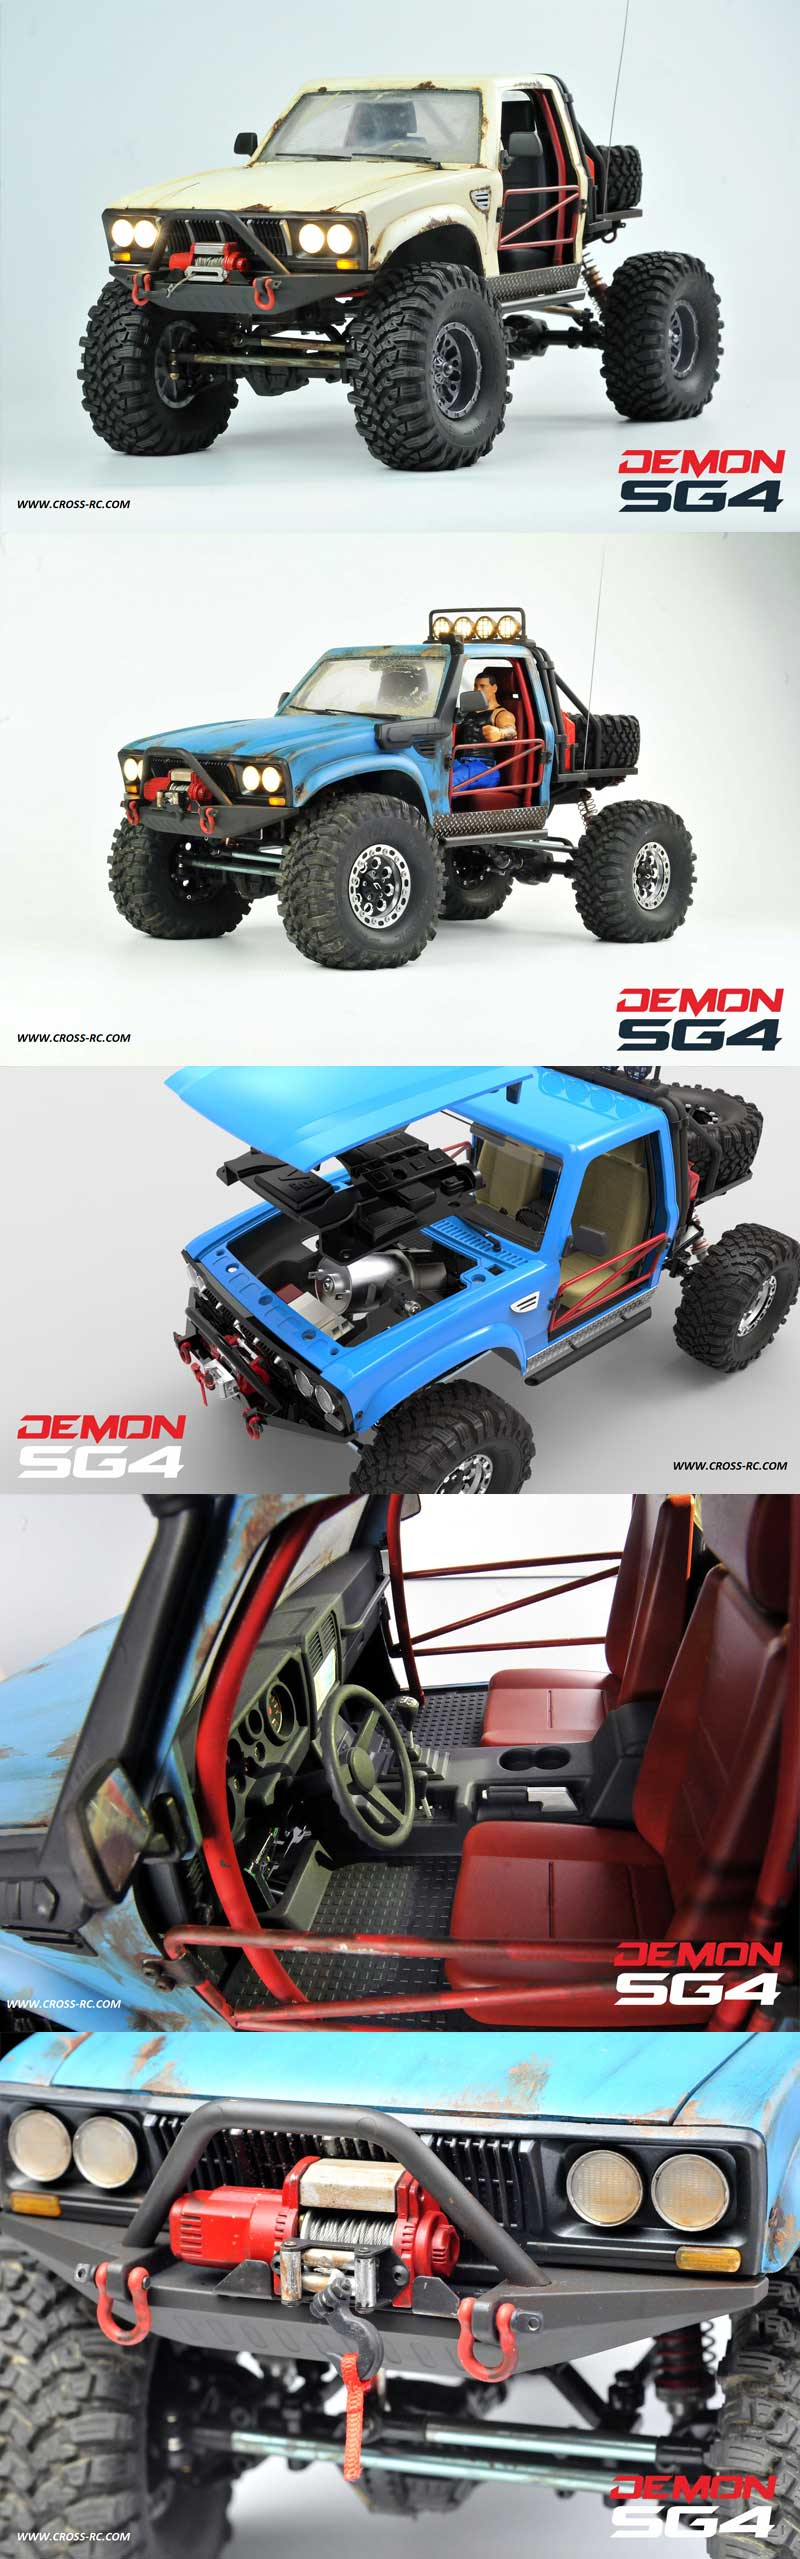 SG4C Demon 4x4 Crawler Kit, w/ Hard Body and CNC Gears, 1/10 Scale